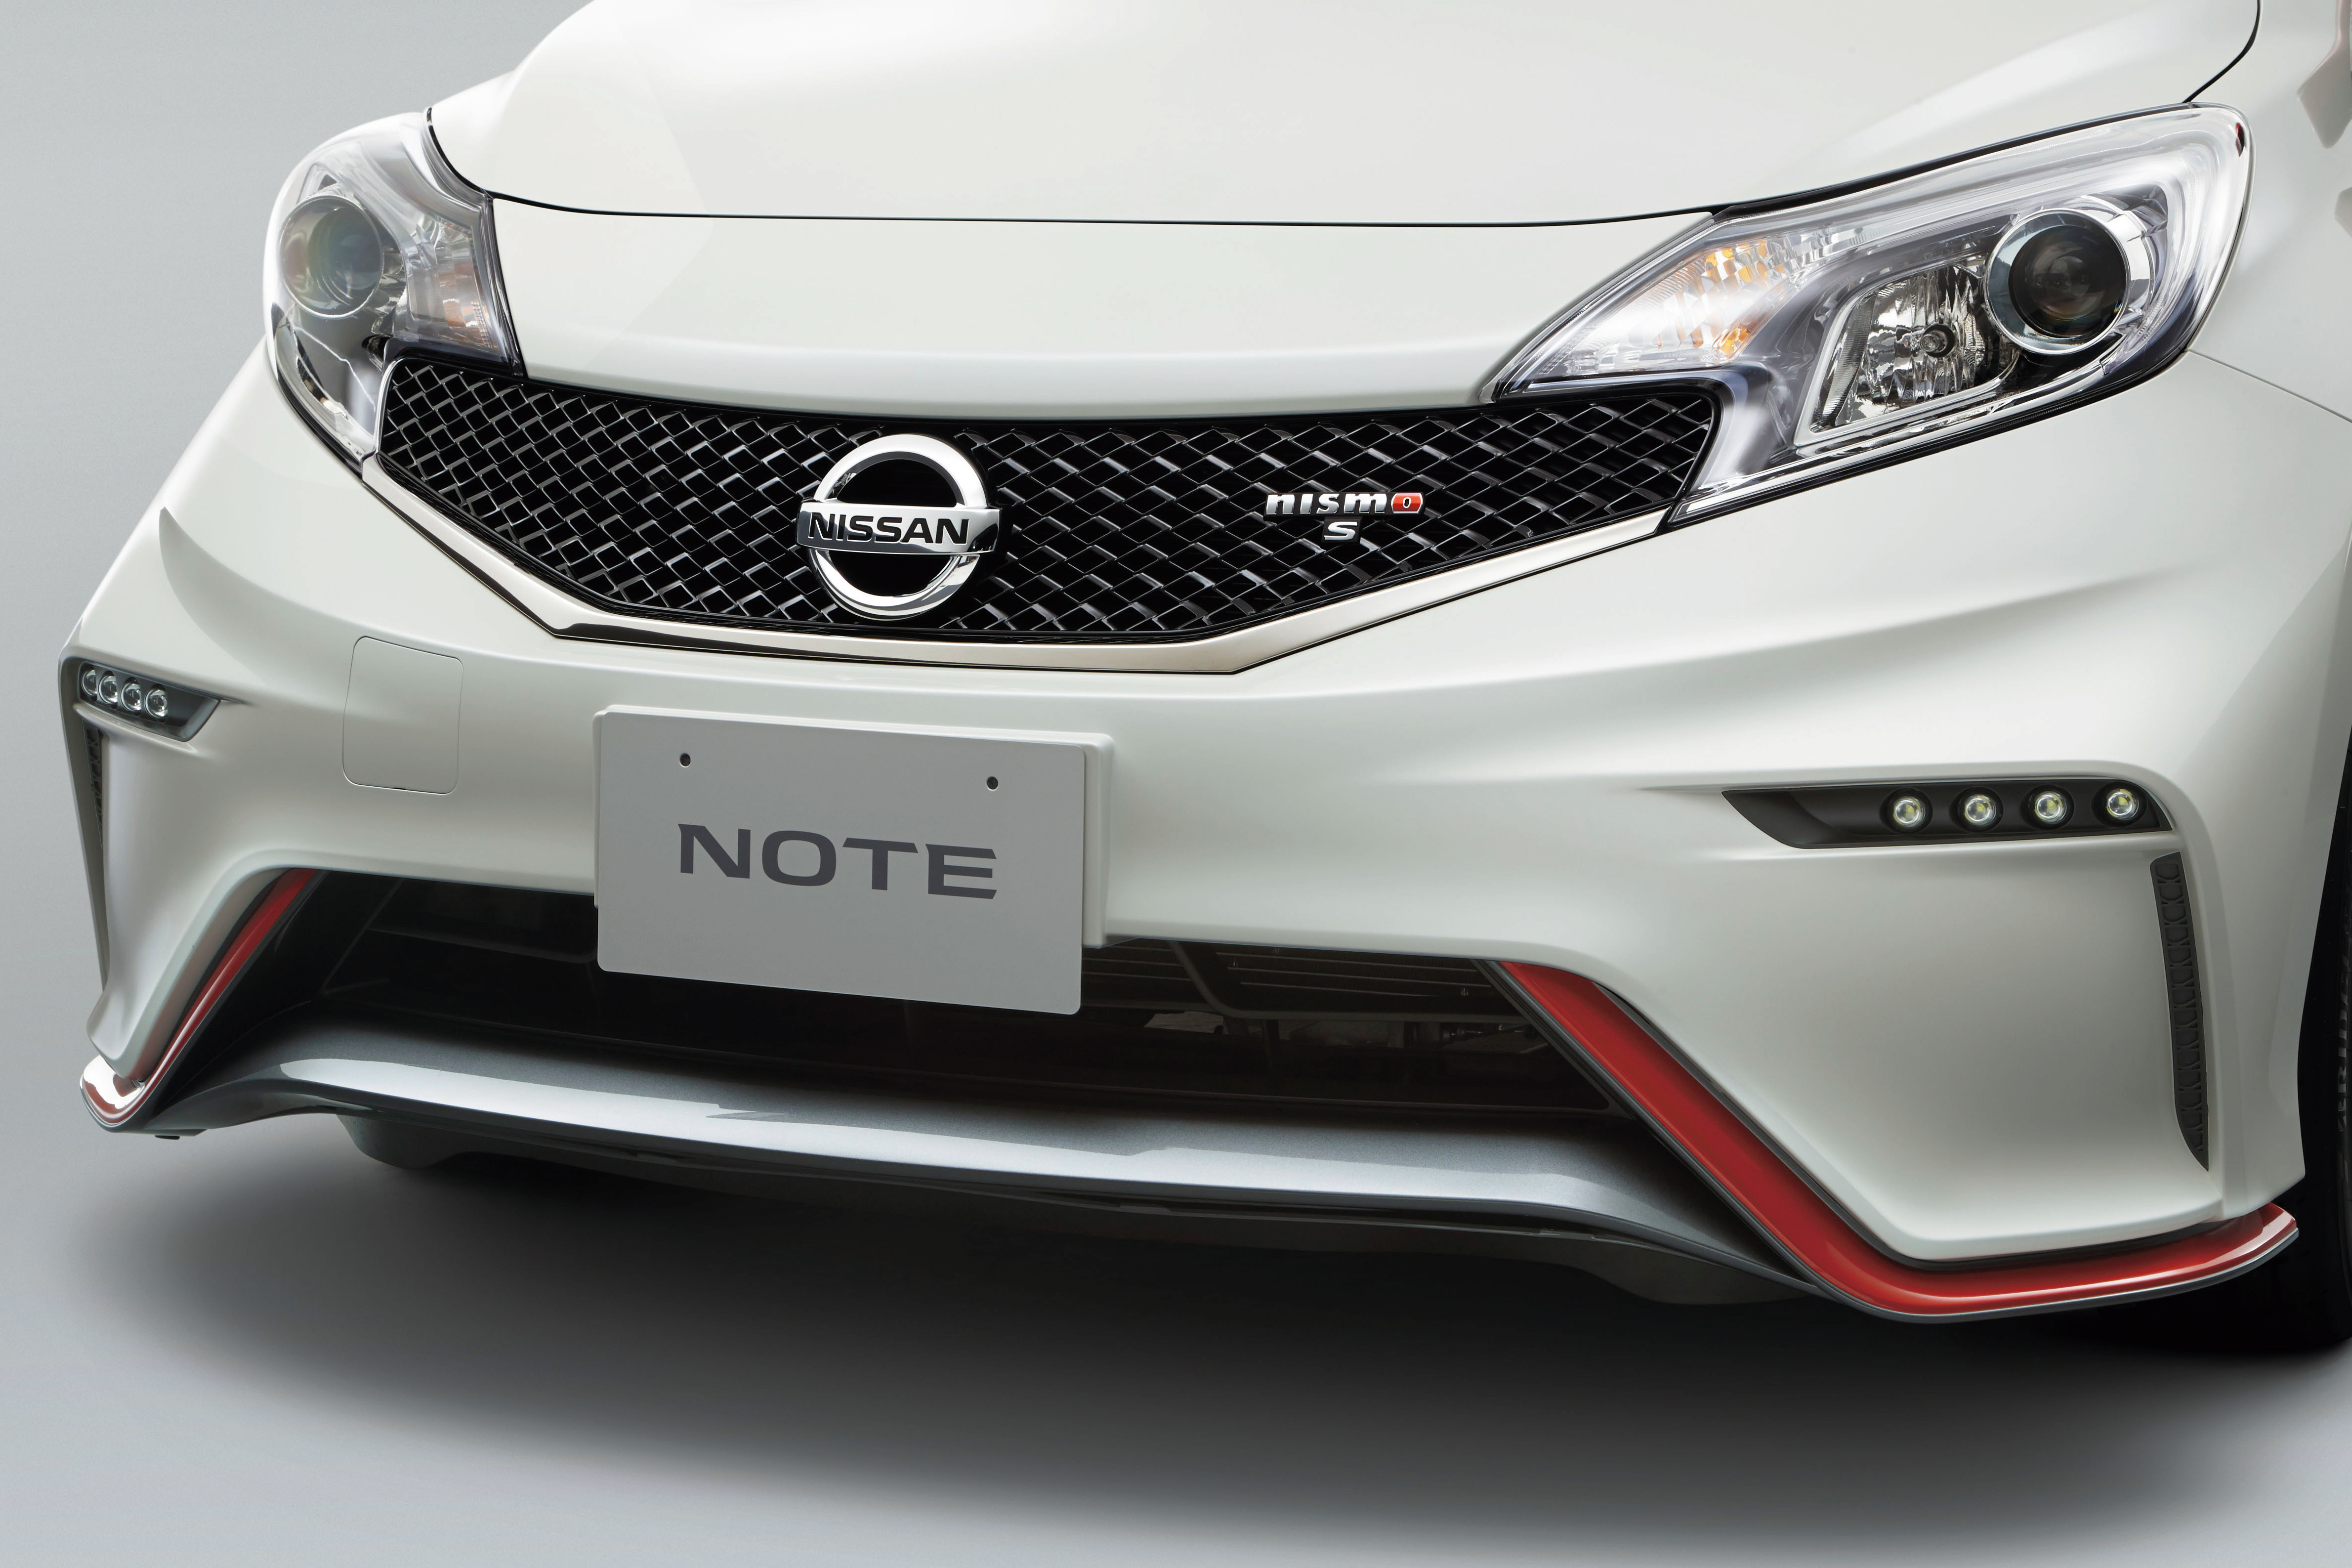 nissan note nismo full jdm specifications revealed image 280309. Black Bedroom Furniture Sets. Home Design Ideas